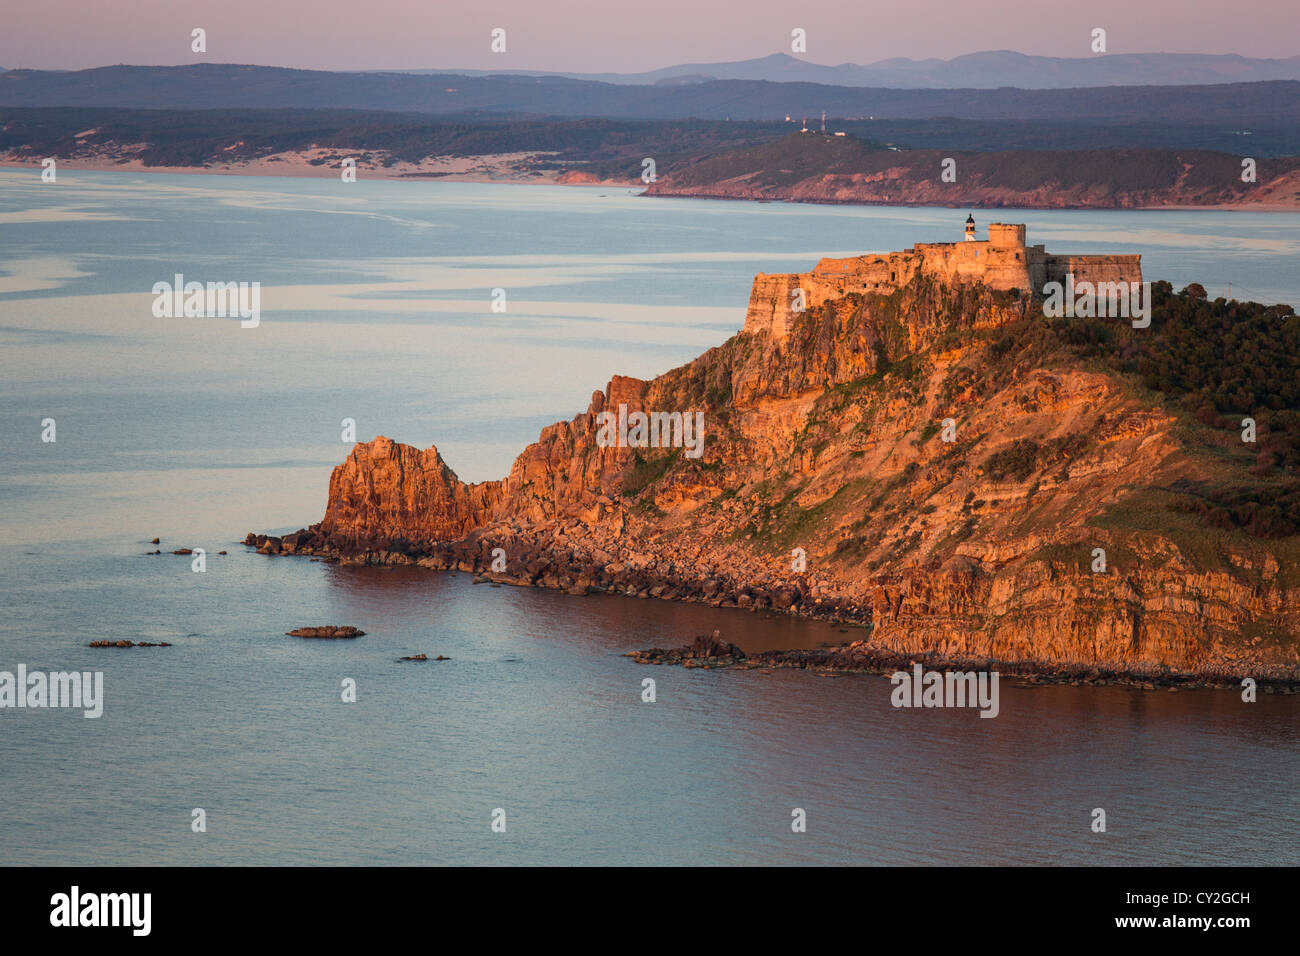 Genoese Castle in Tabarka Tunisia - Stock Image